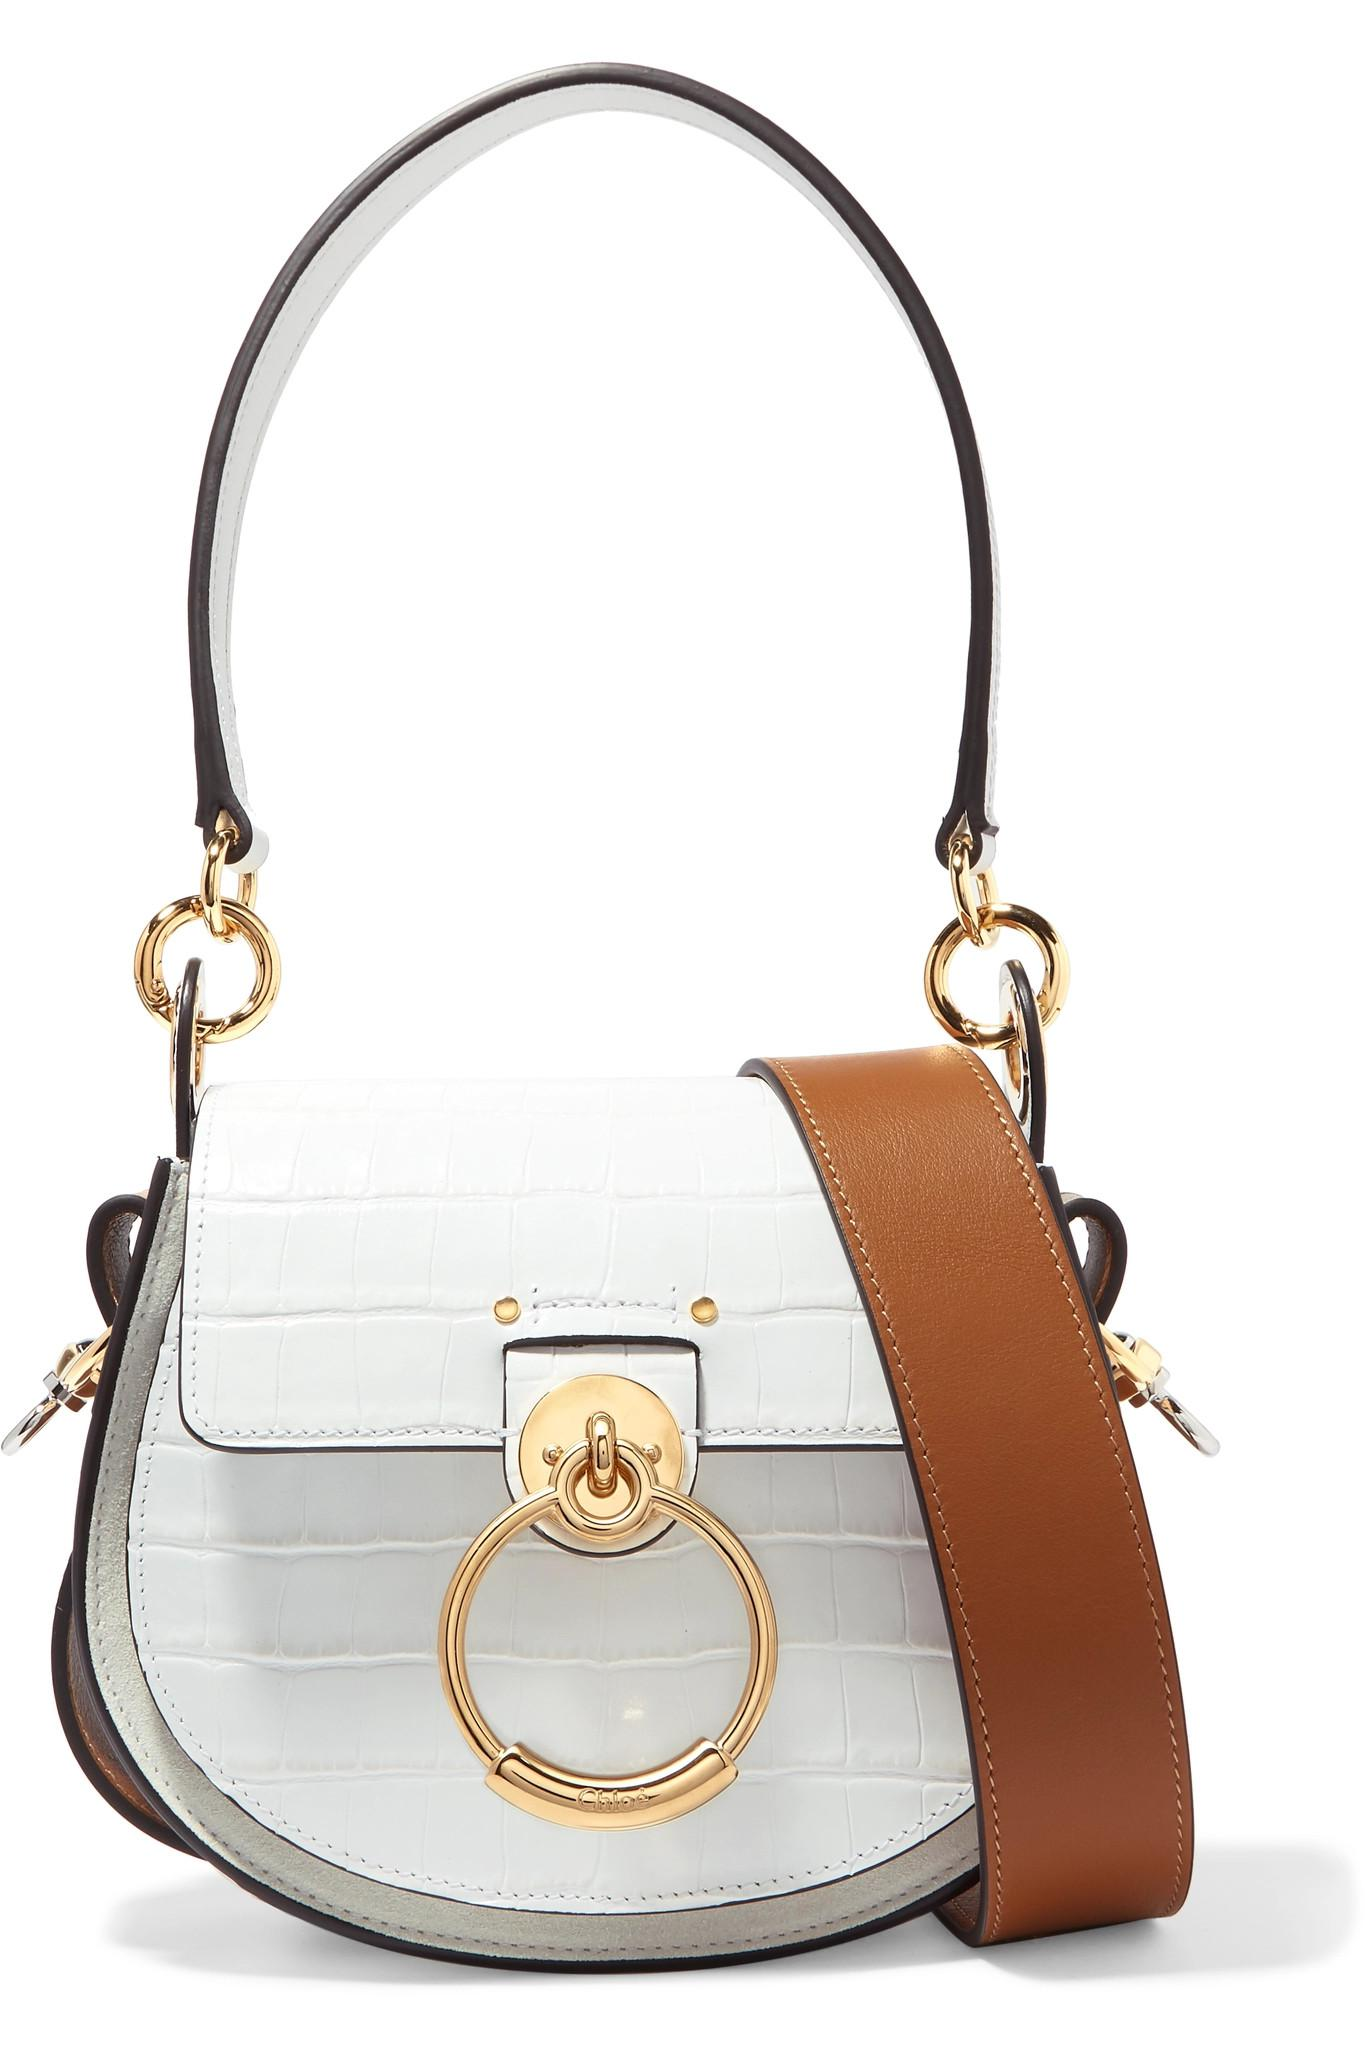 5c7bafcc64c9 Chloé Tess Small Croc-effect Leather And Suede Shoulder Bag in White ...